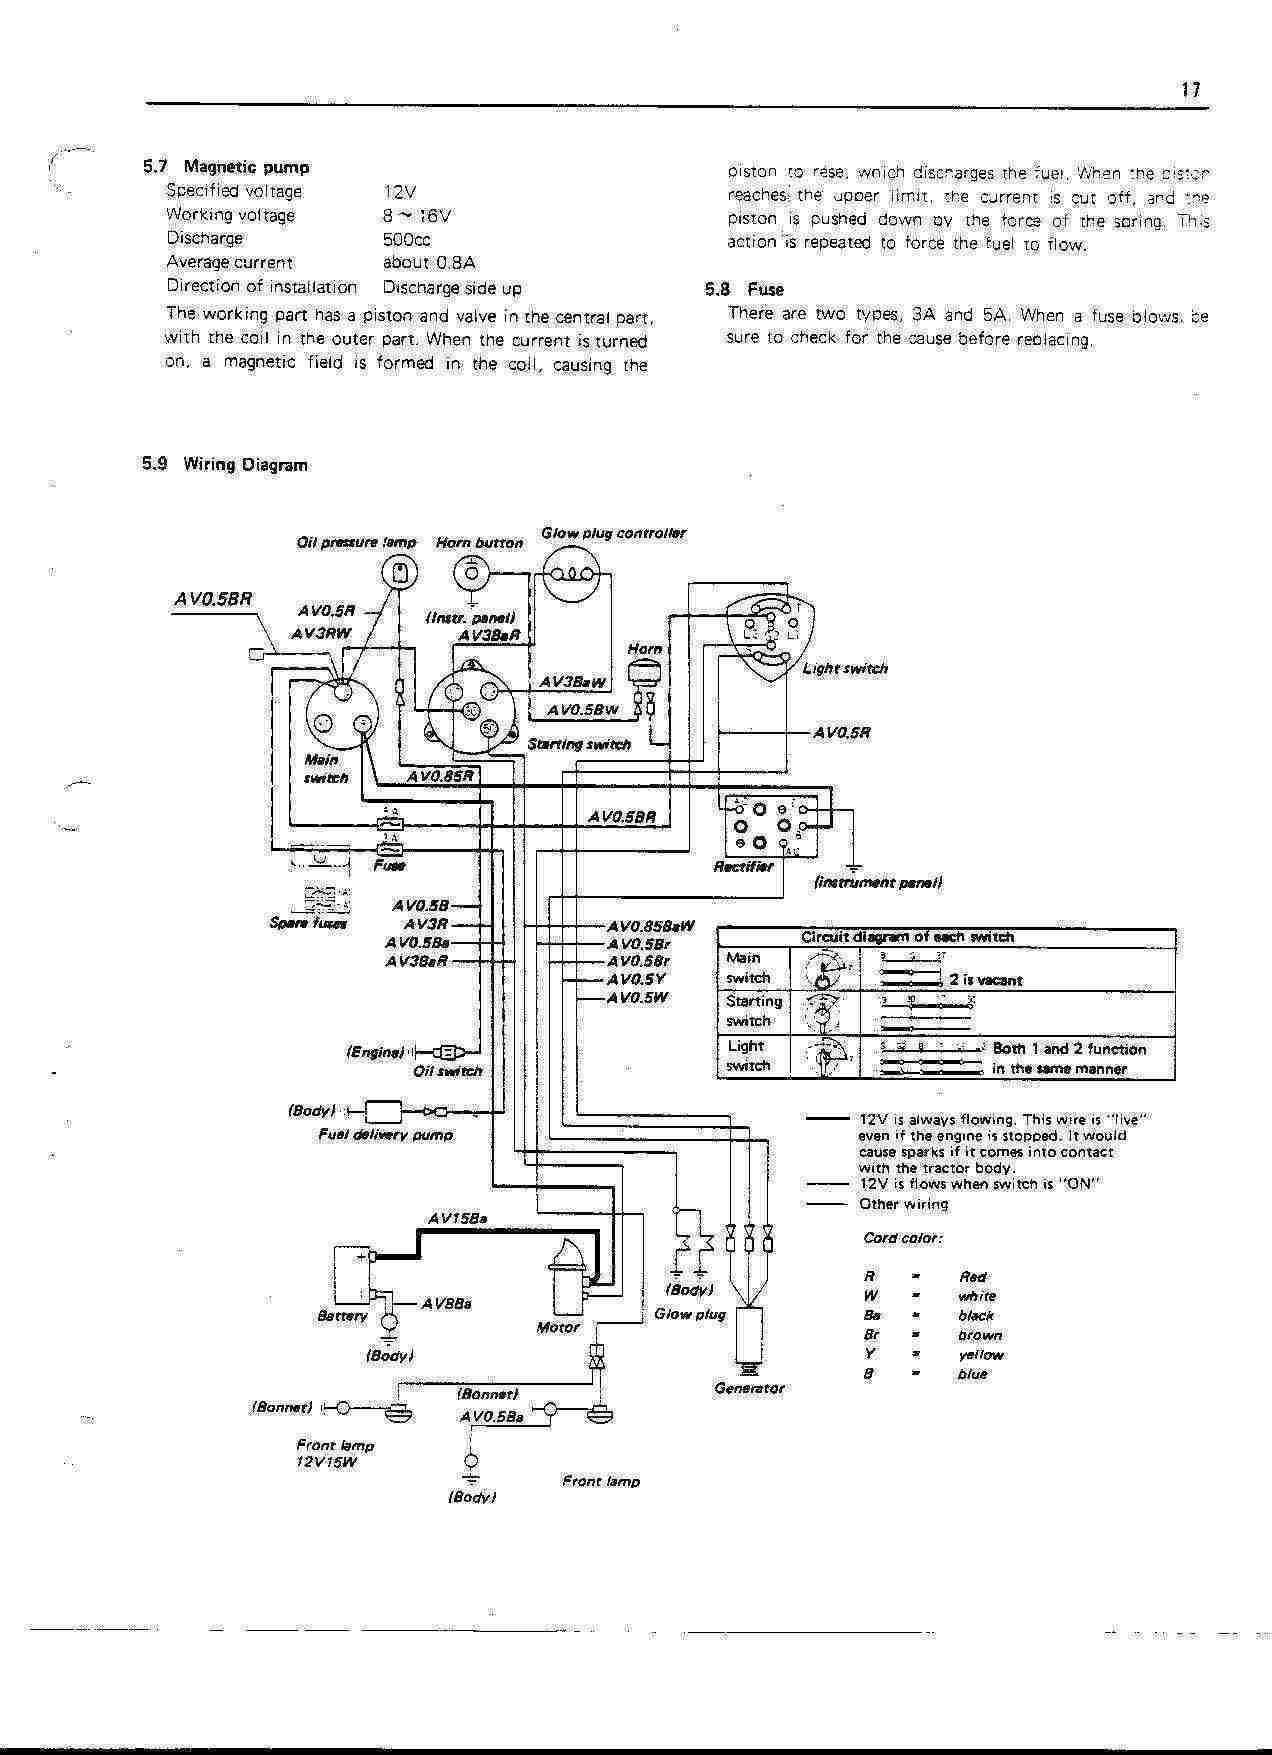 [DIAGRAM] Bluesboy Wiring Diagram FULL Version HD Quality